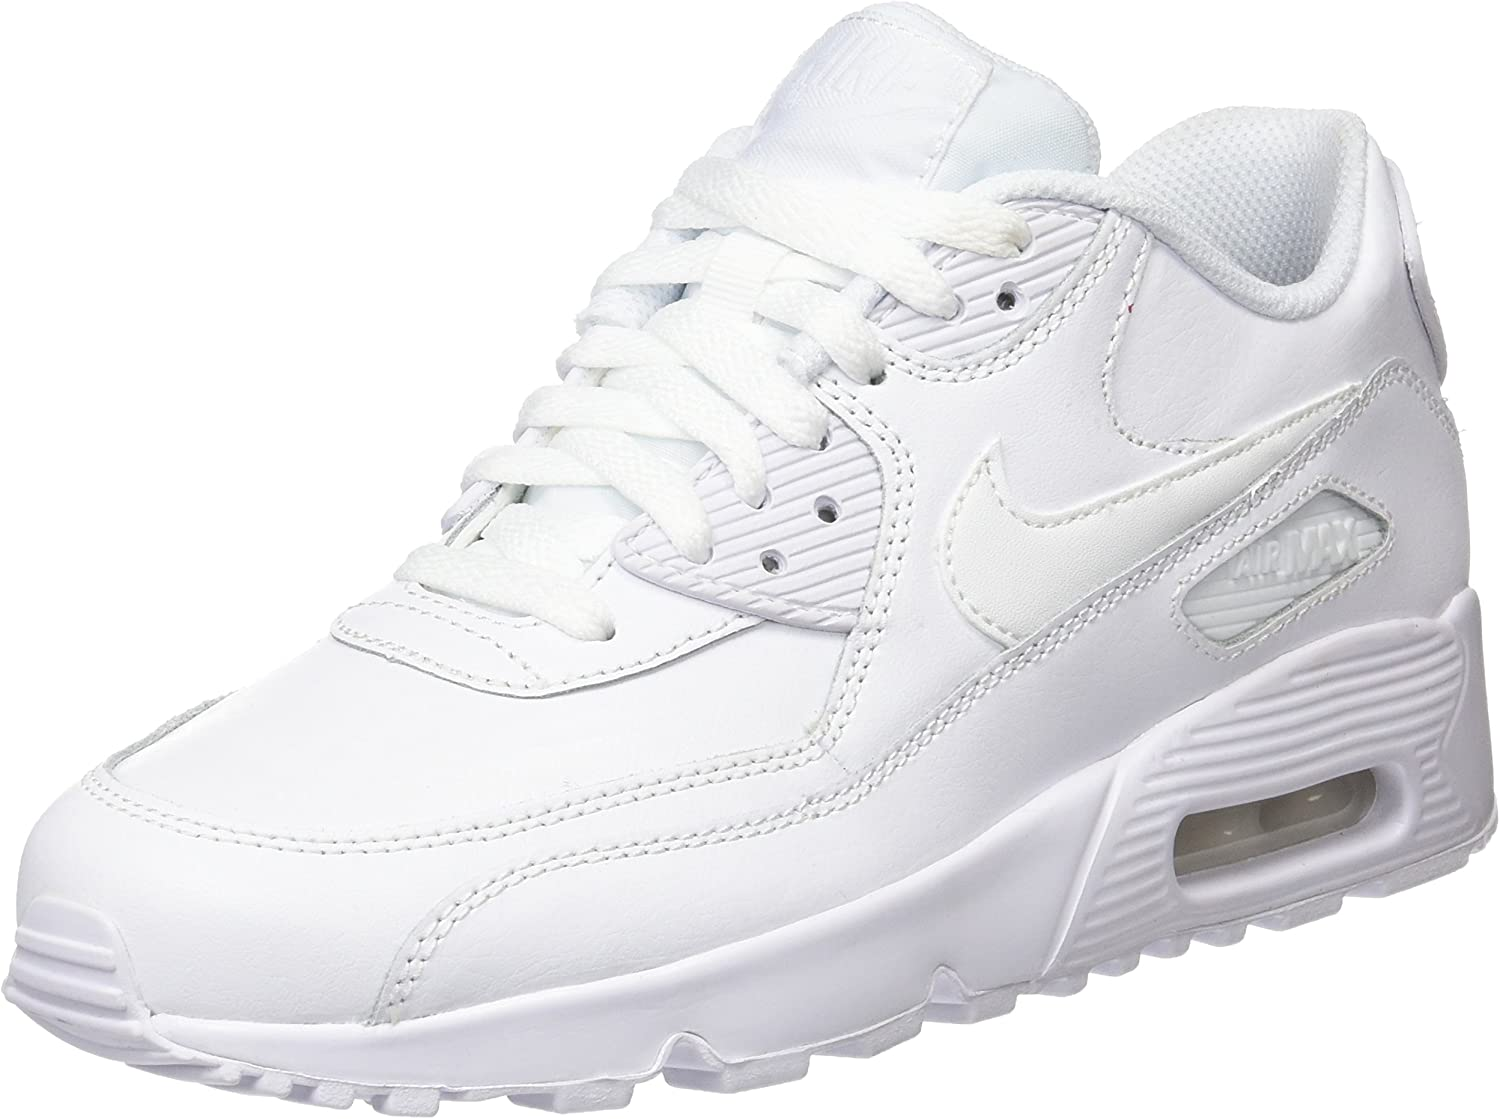 Nike Air Max 90 LTR (GS), Chaussures de Running Entrainement Homme